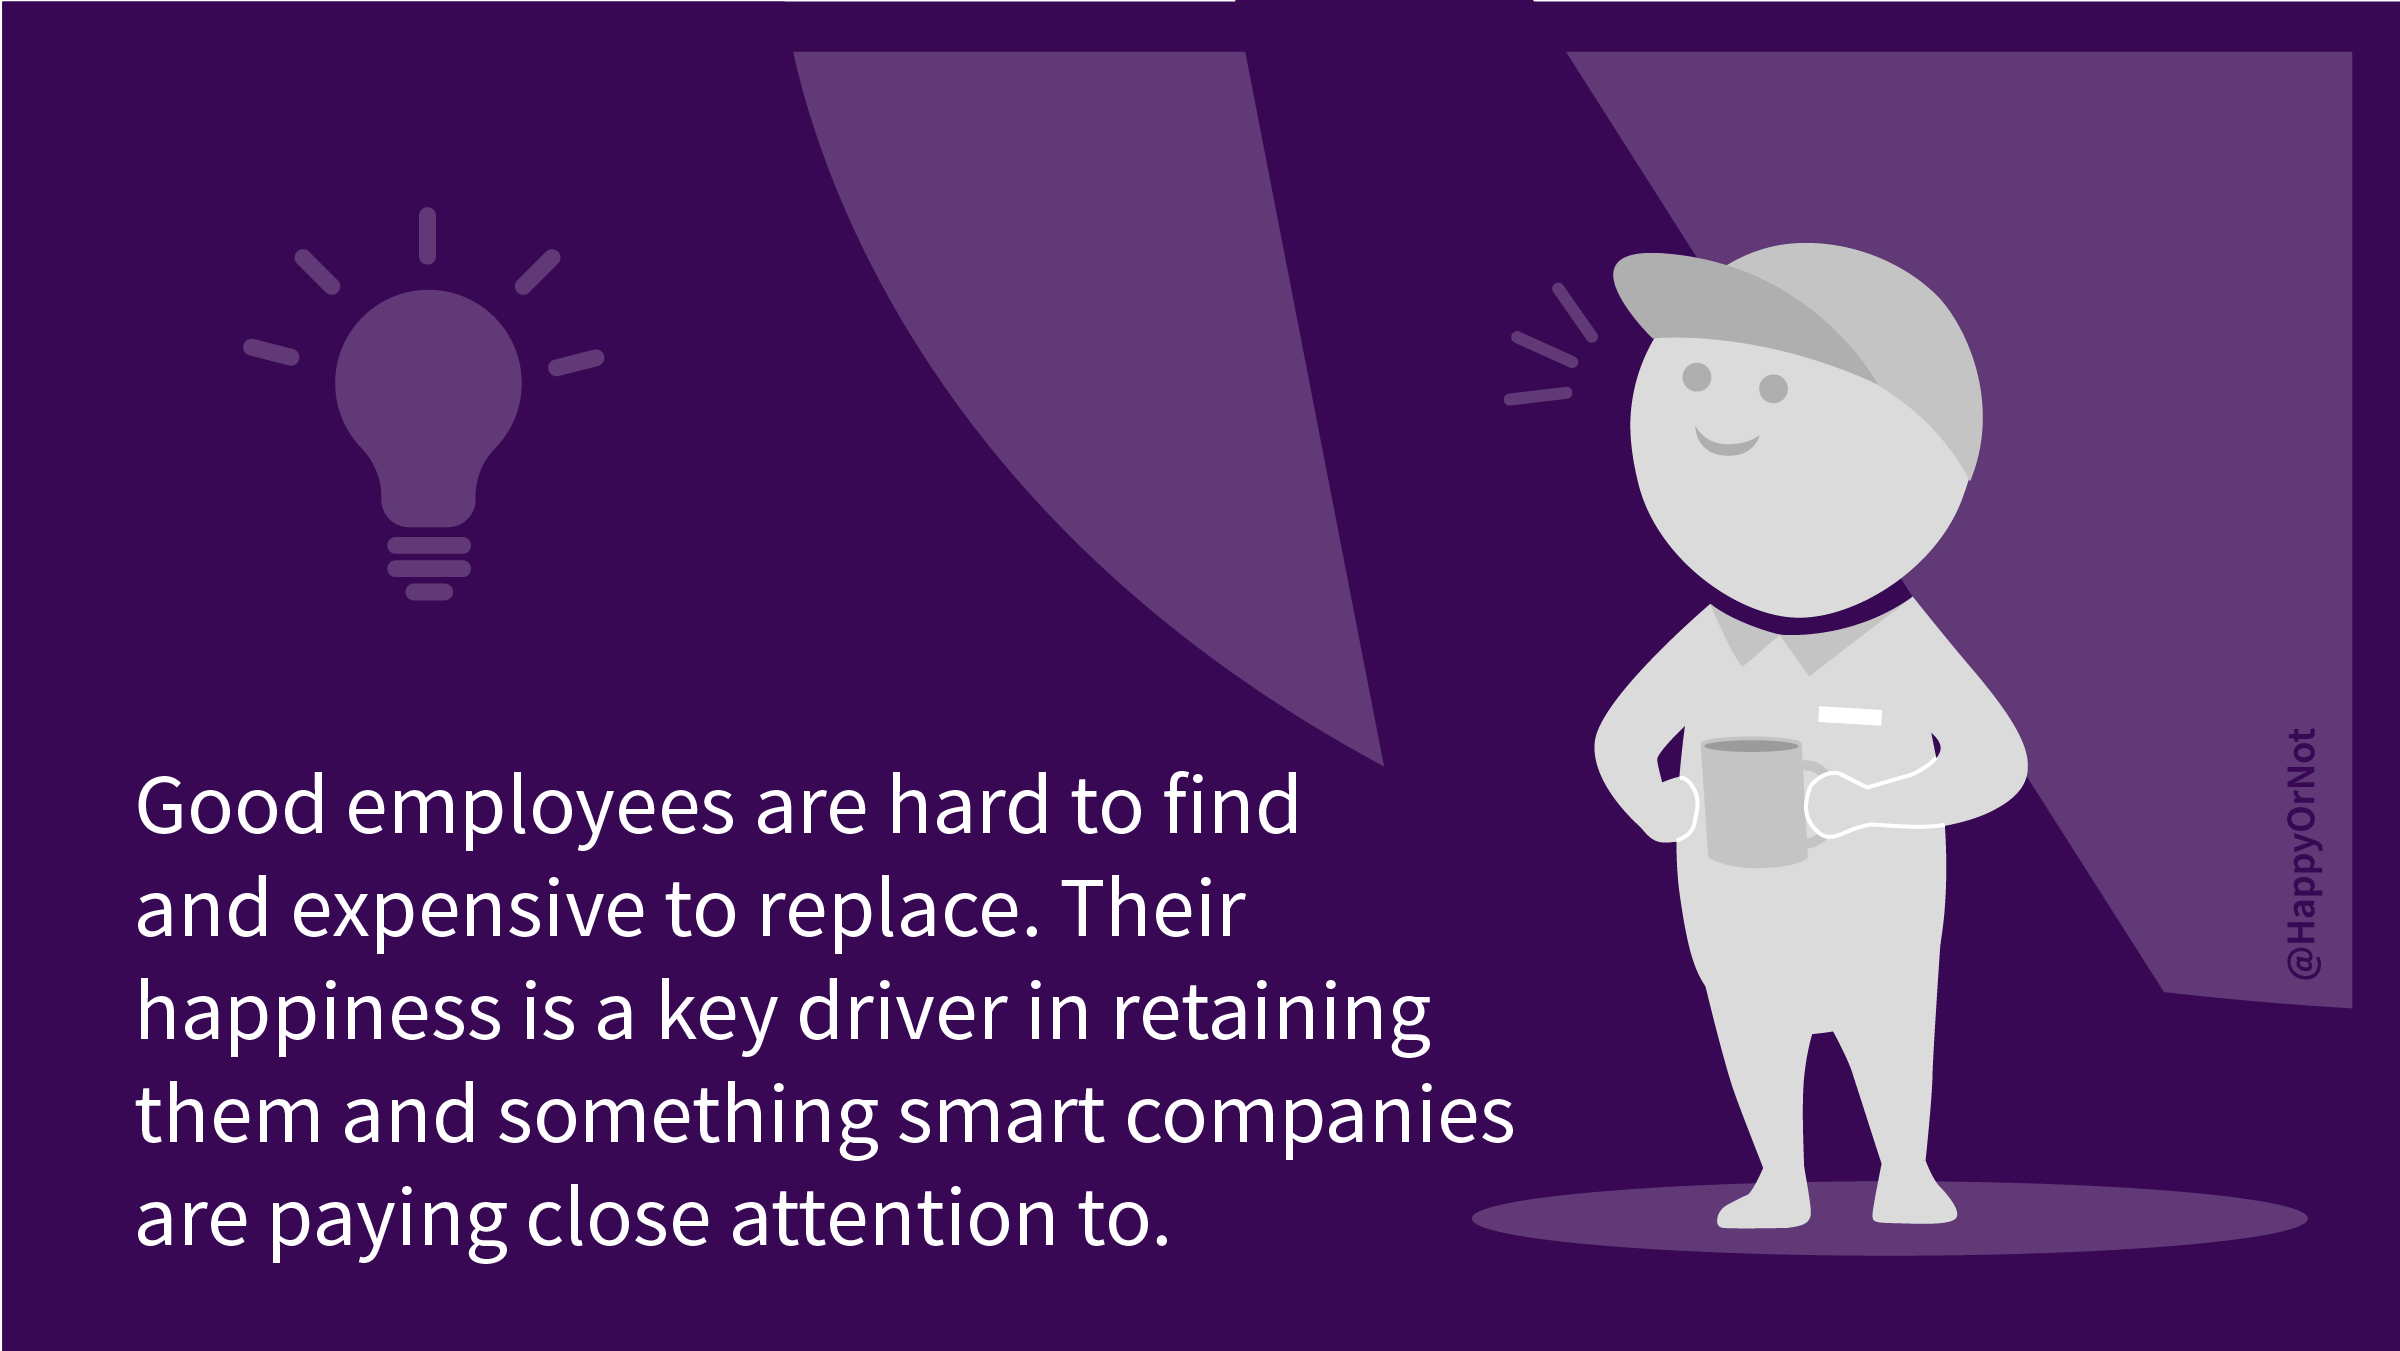 HappyOrNot CX360 Leader Insights: Part 3: Good employees are hard to find and expensive to replace. Their happiness is a key driver in retaining them and something smart companies are paying close attention to.